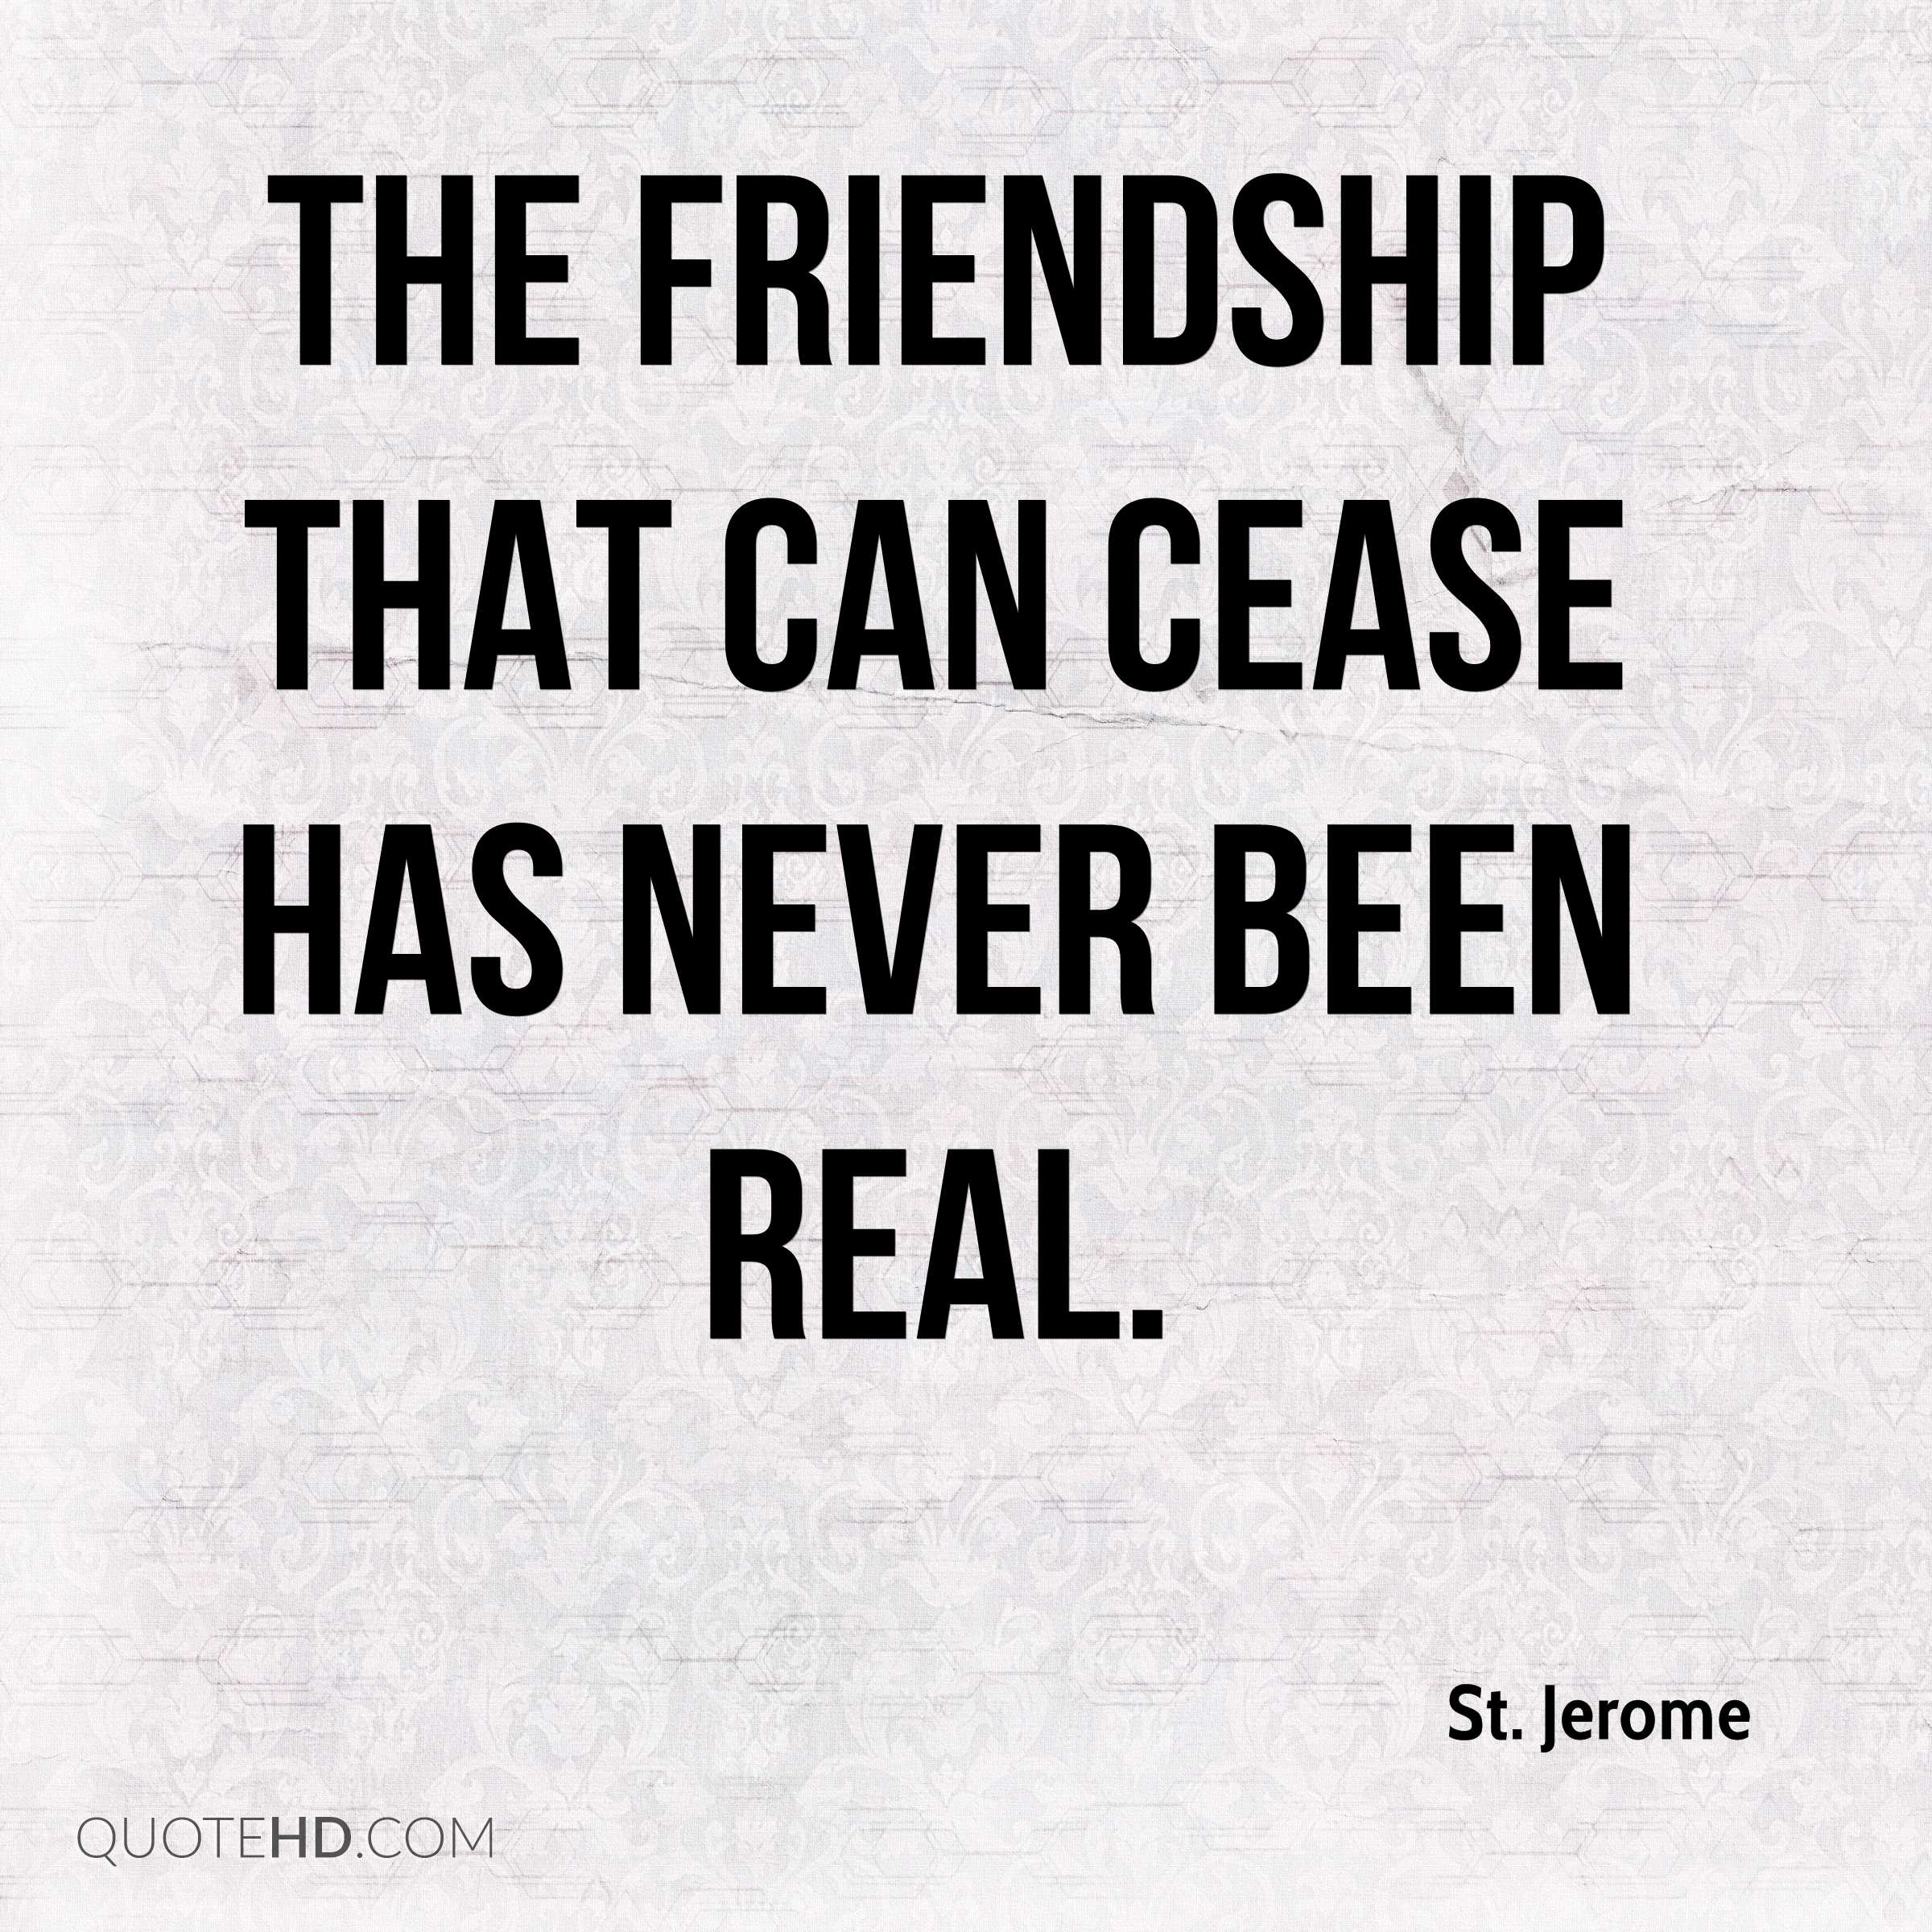 A Quote About Friendship Stjerome Friendship Quotes  Quotehd